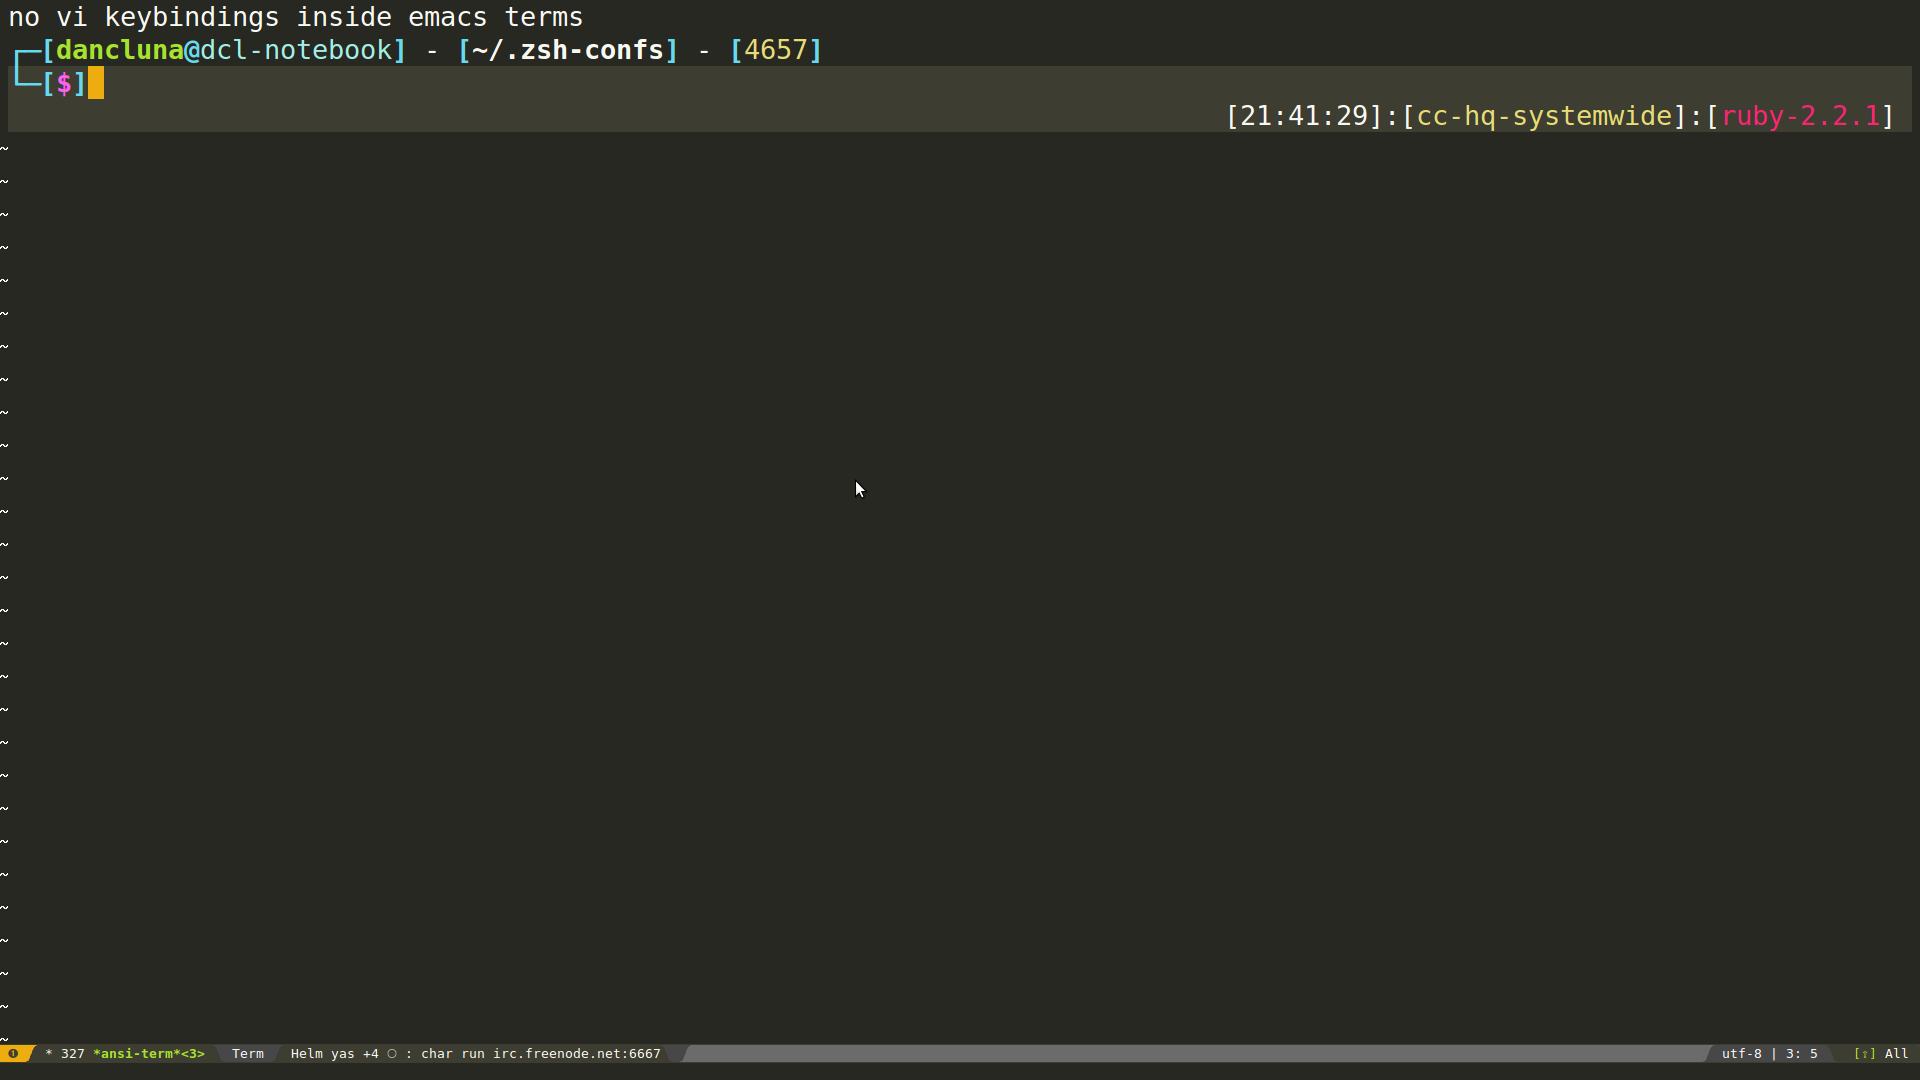 yay for working ansi-term